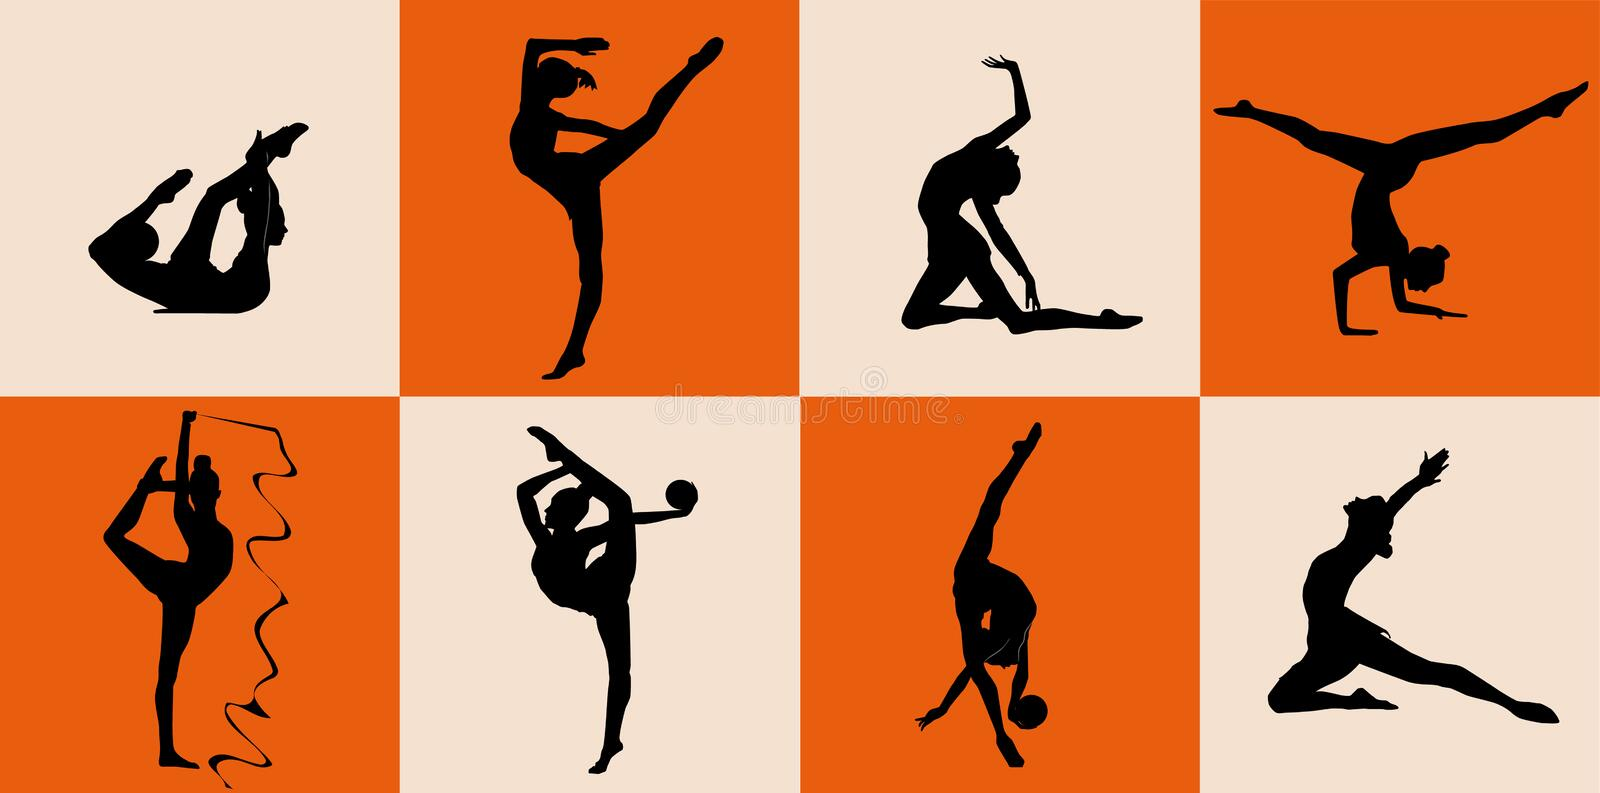 Gymnastic. Vector illustration with different gymnastic silhouettes isolated on color background royalty free illustration